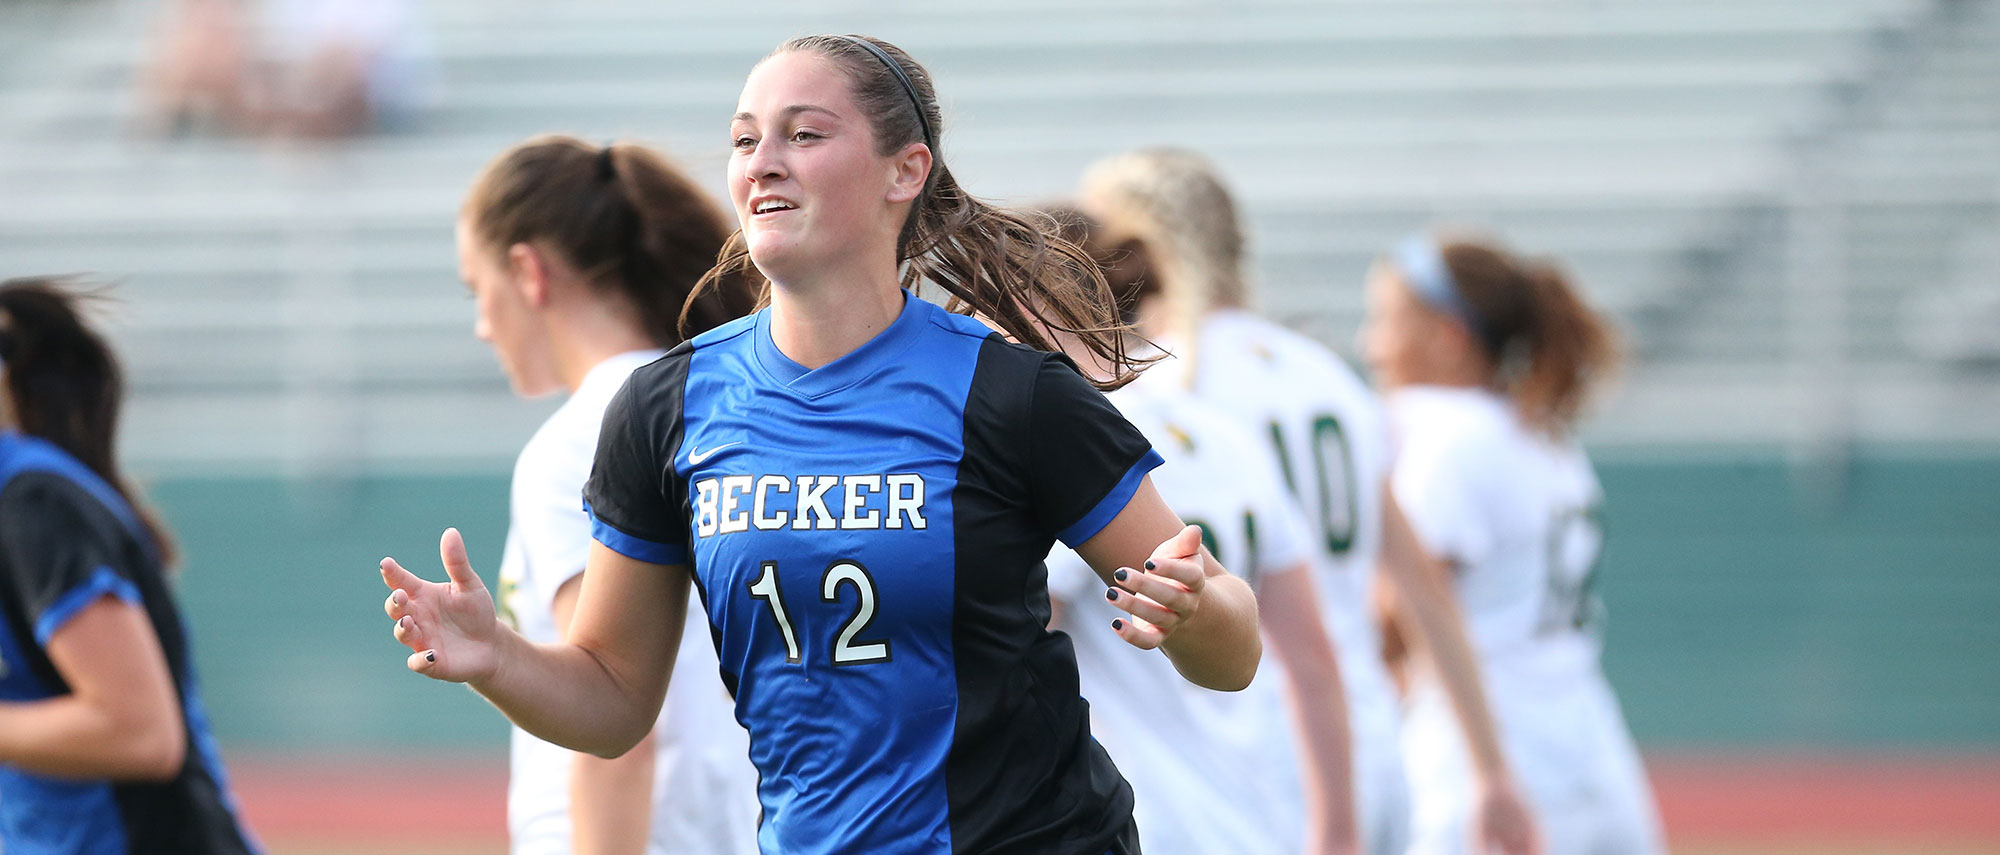 In the 11th minute of the opening frame, Becker junior Ciara McKissick (Charlton, Mass.) redirected a corner kick off the foot of senior Maria Colon (Wharton, NJ), who had placed the pass deep to the far post.